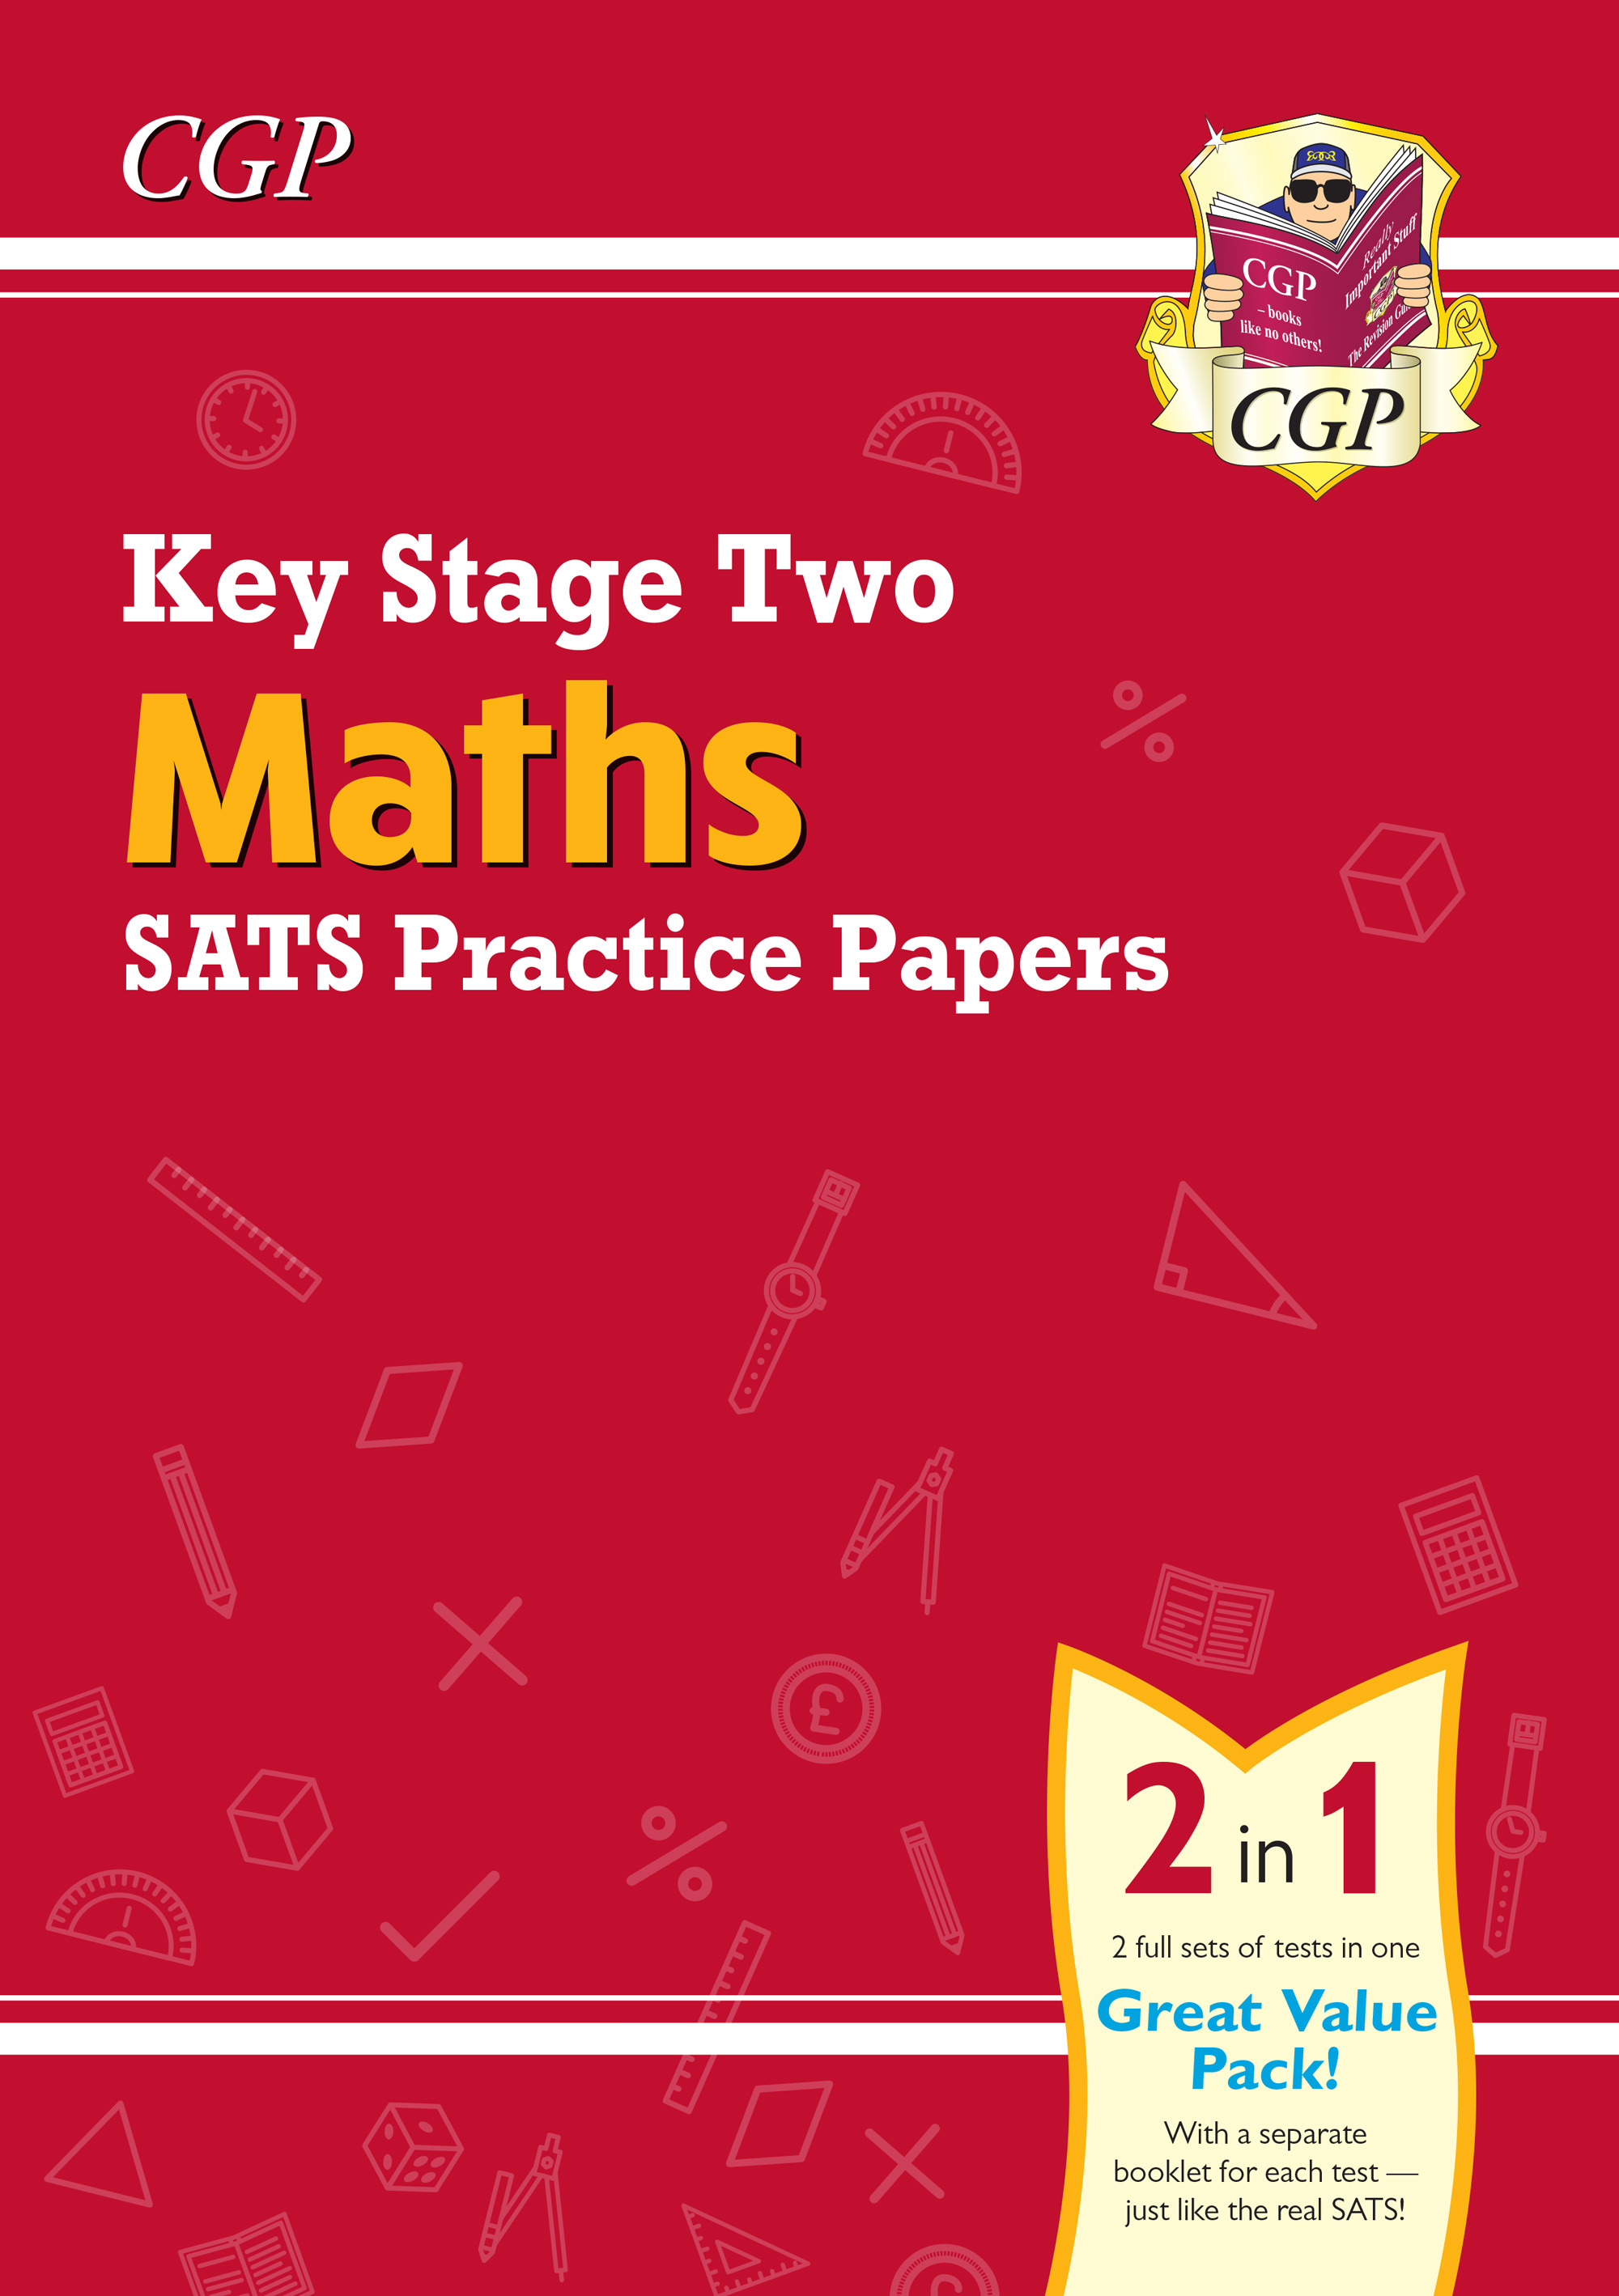 MHB27 - New KS2 Maths SATS Practice Papers (for the tests in 2019)